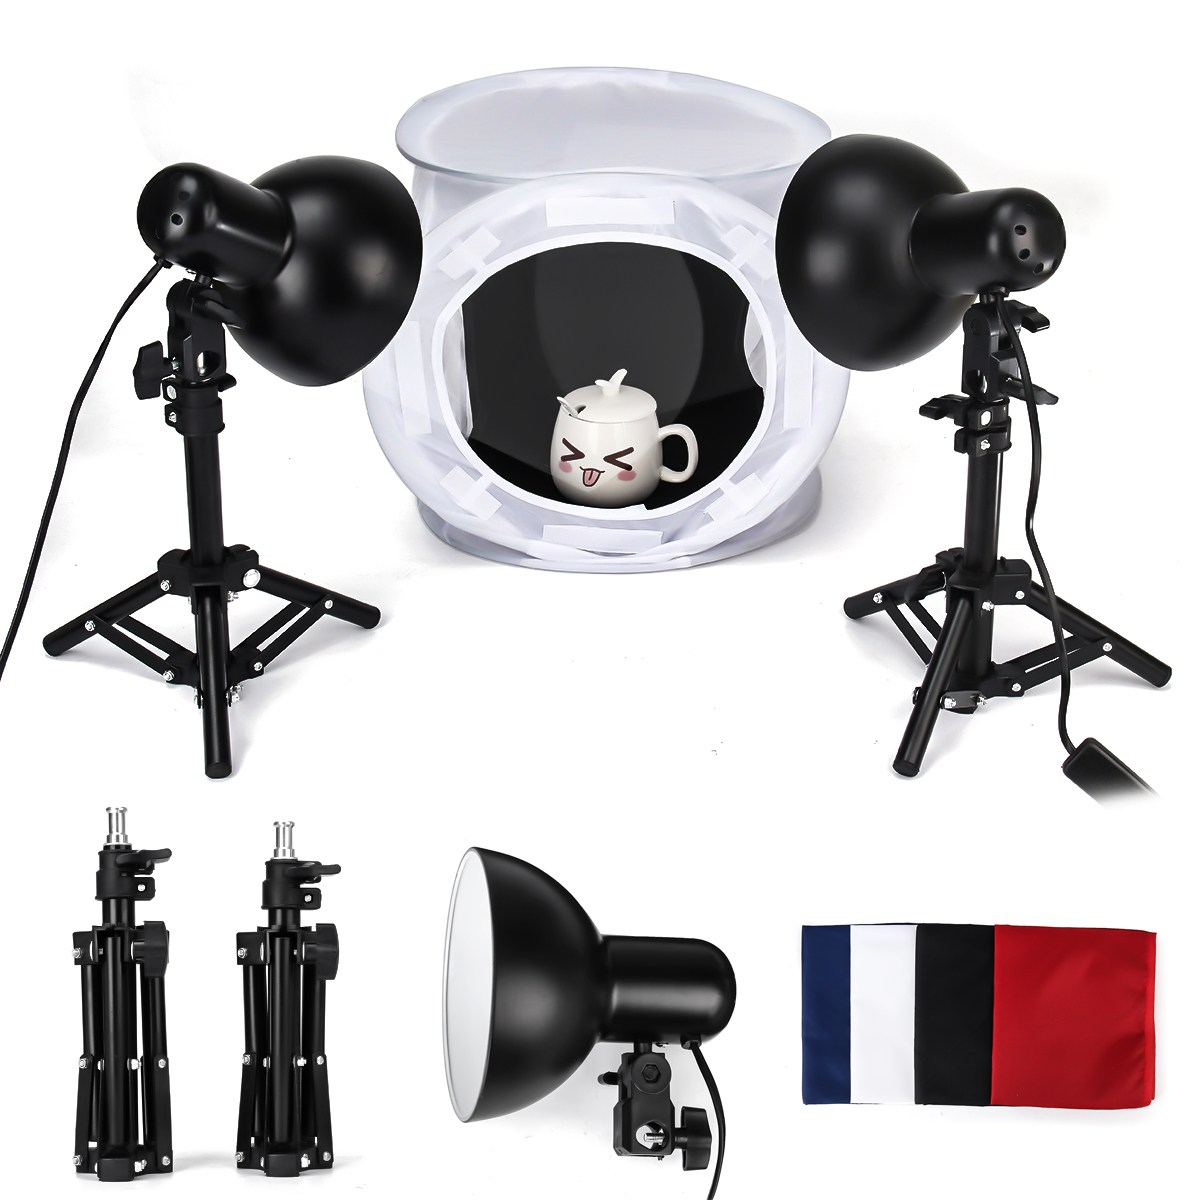 Room Photo Studio Photography Kit Light Bulb Lighting Muslin Backdrop Stand Set 2018 New Arrival 1pc 150w 220v 5500k e27 photo studio bulb video light photography daylight lamp for digital camera photography